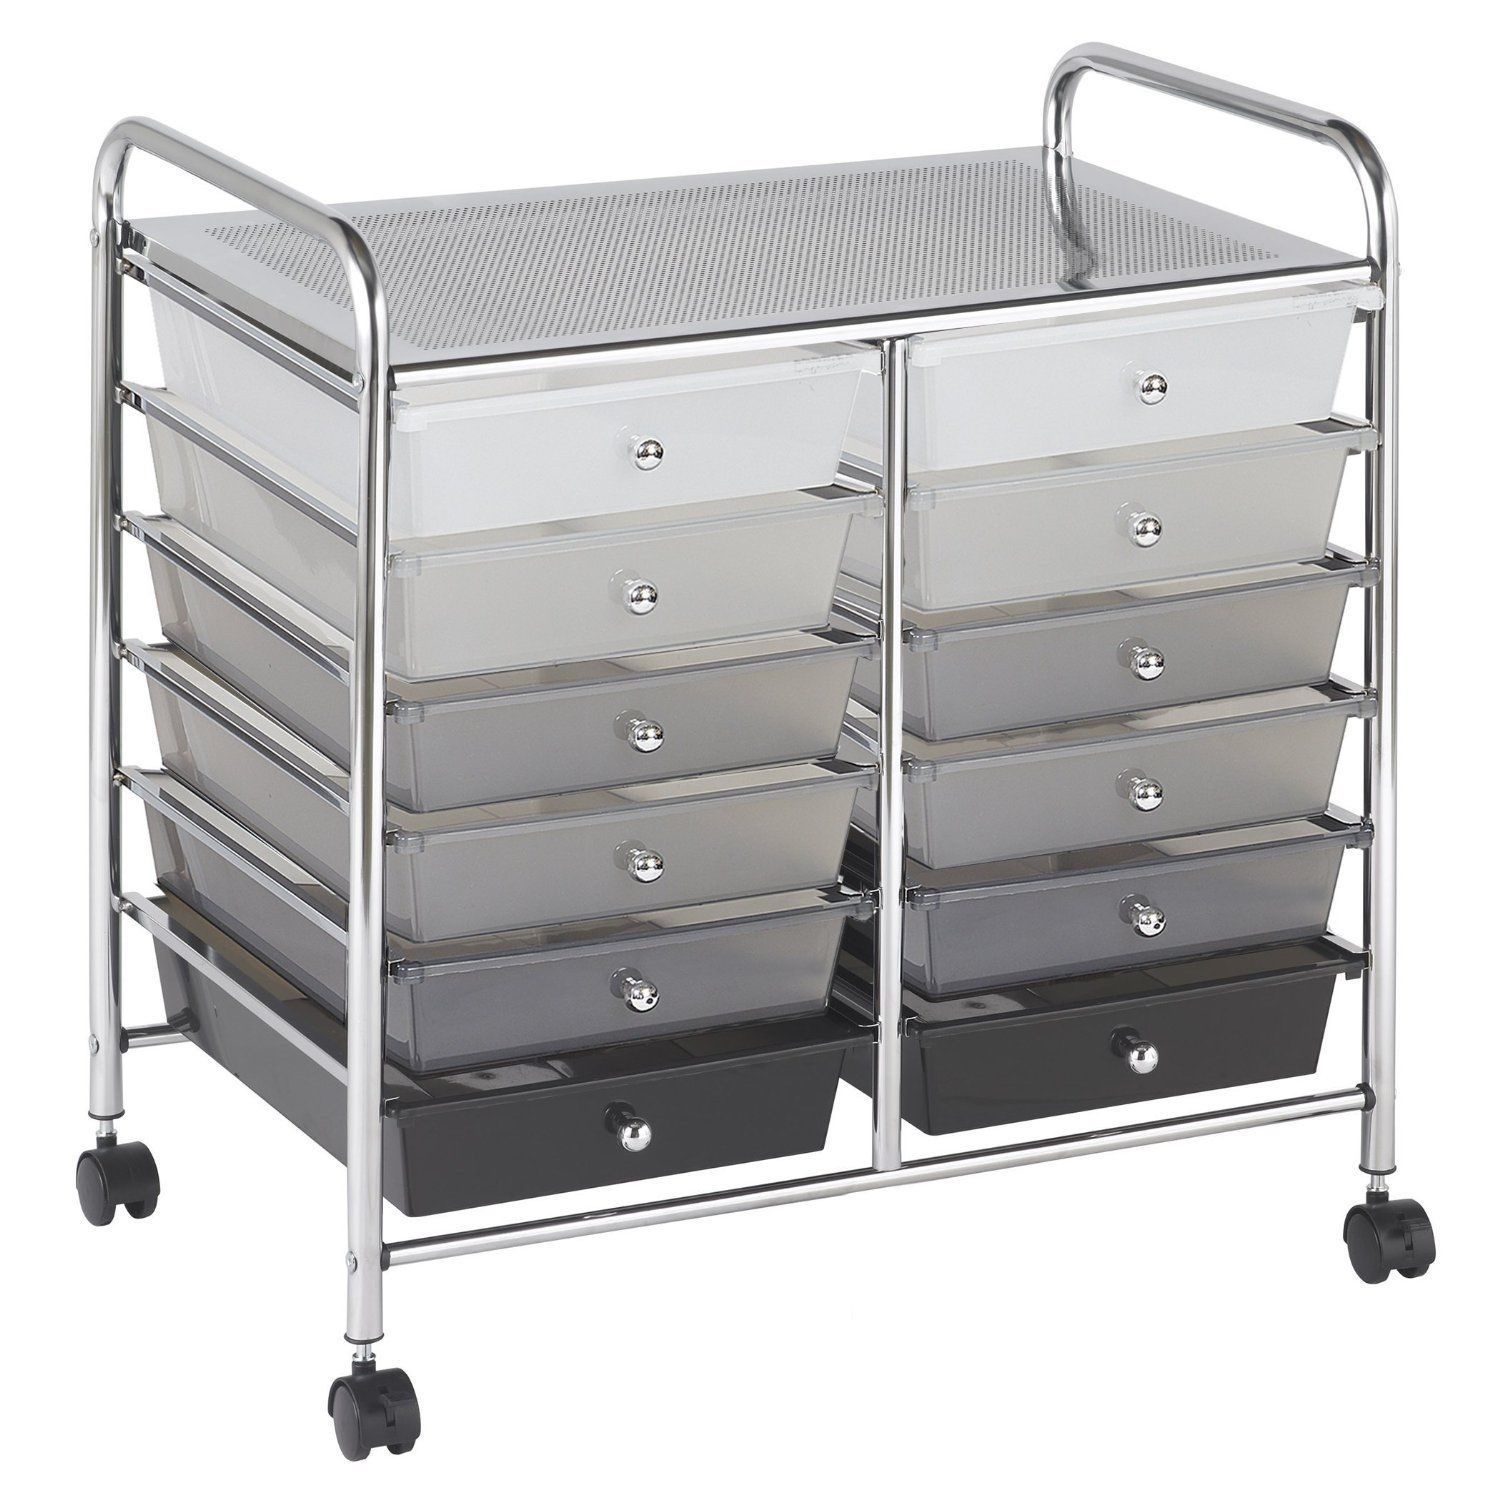 Amazon Best Sellers: Best Storage Drawer Carts